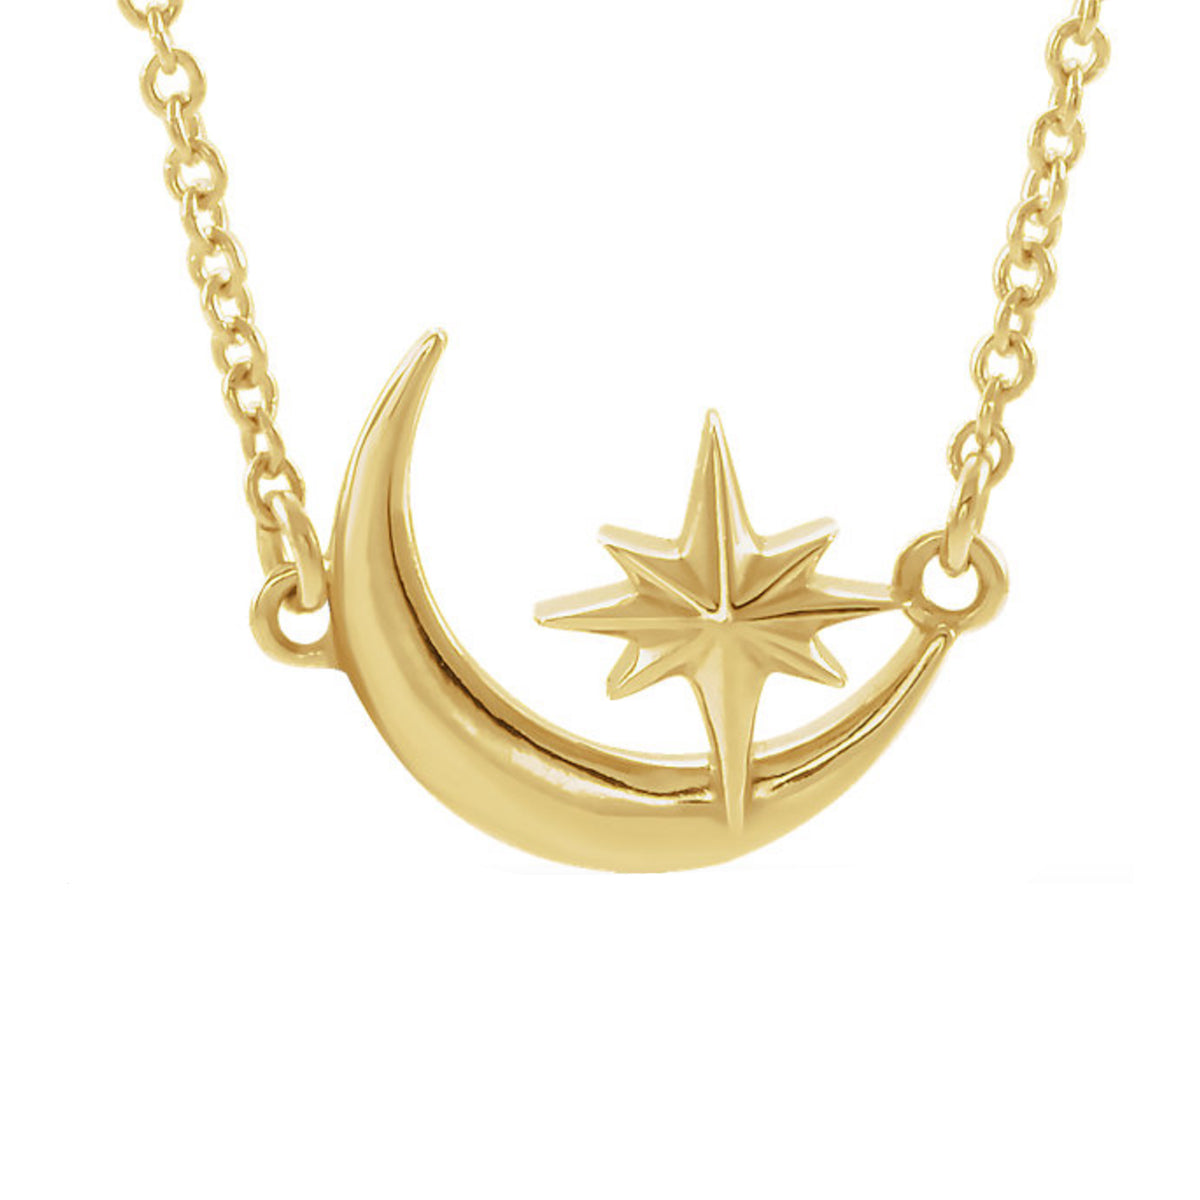 Crescent Moon & Star Necklace in White, Yellow or Rose Gold - Talisman Collection Fine Jewelers